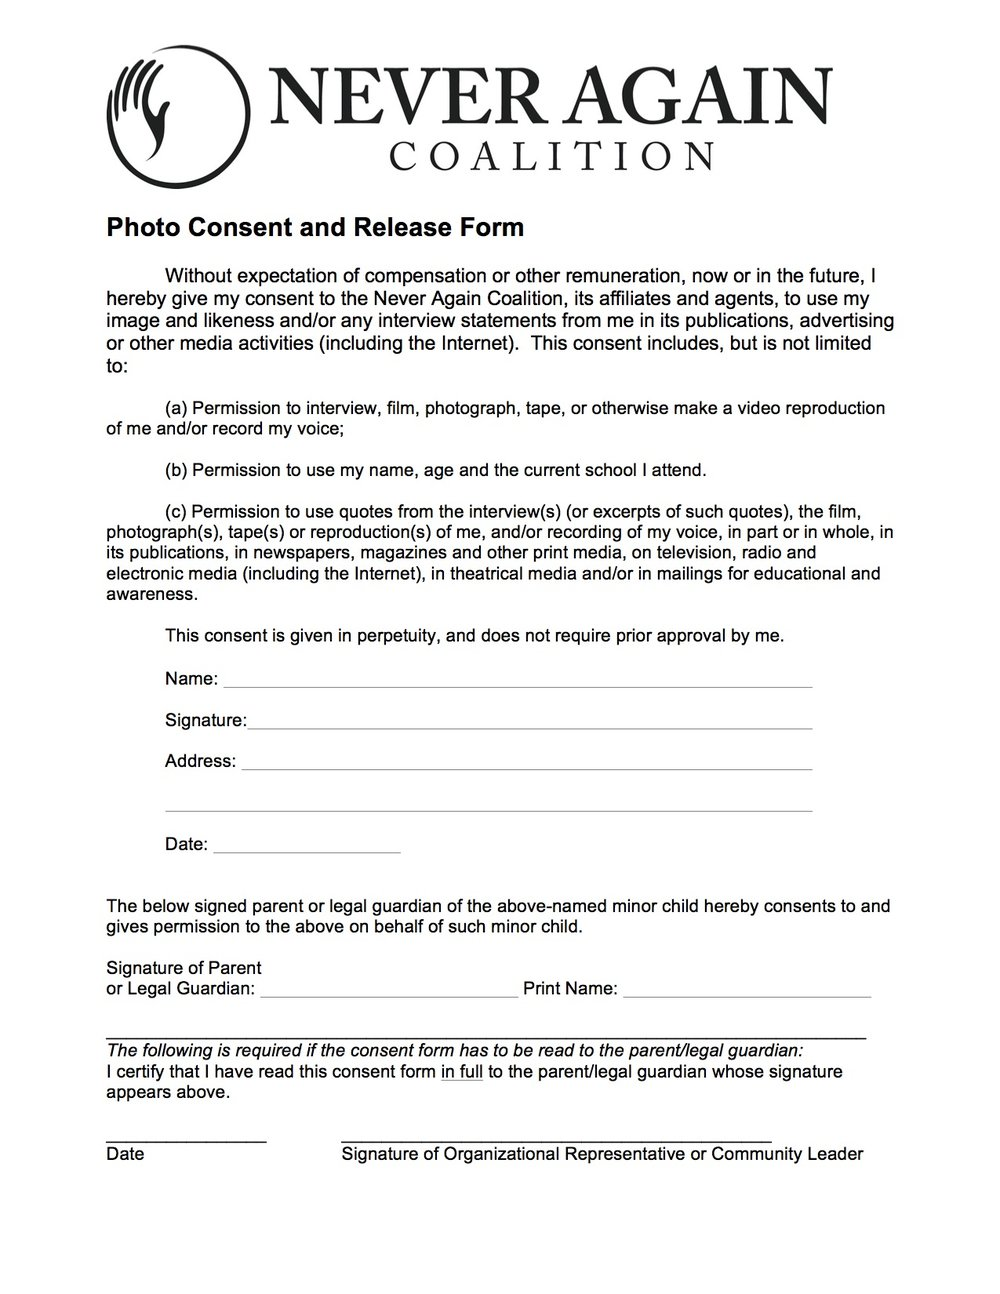 Please mail the form back to us at : Never Again Coalition, P.O. Box 25793, Portland, OR 97298